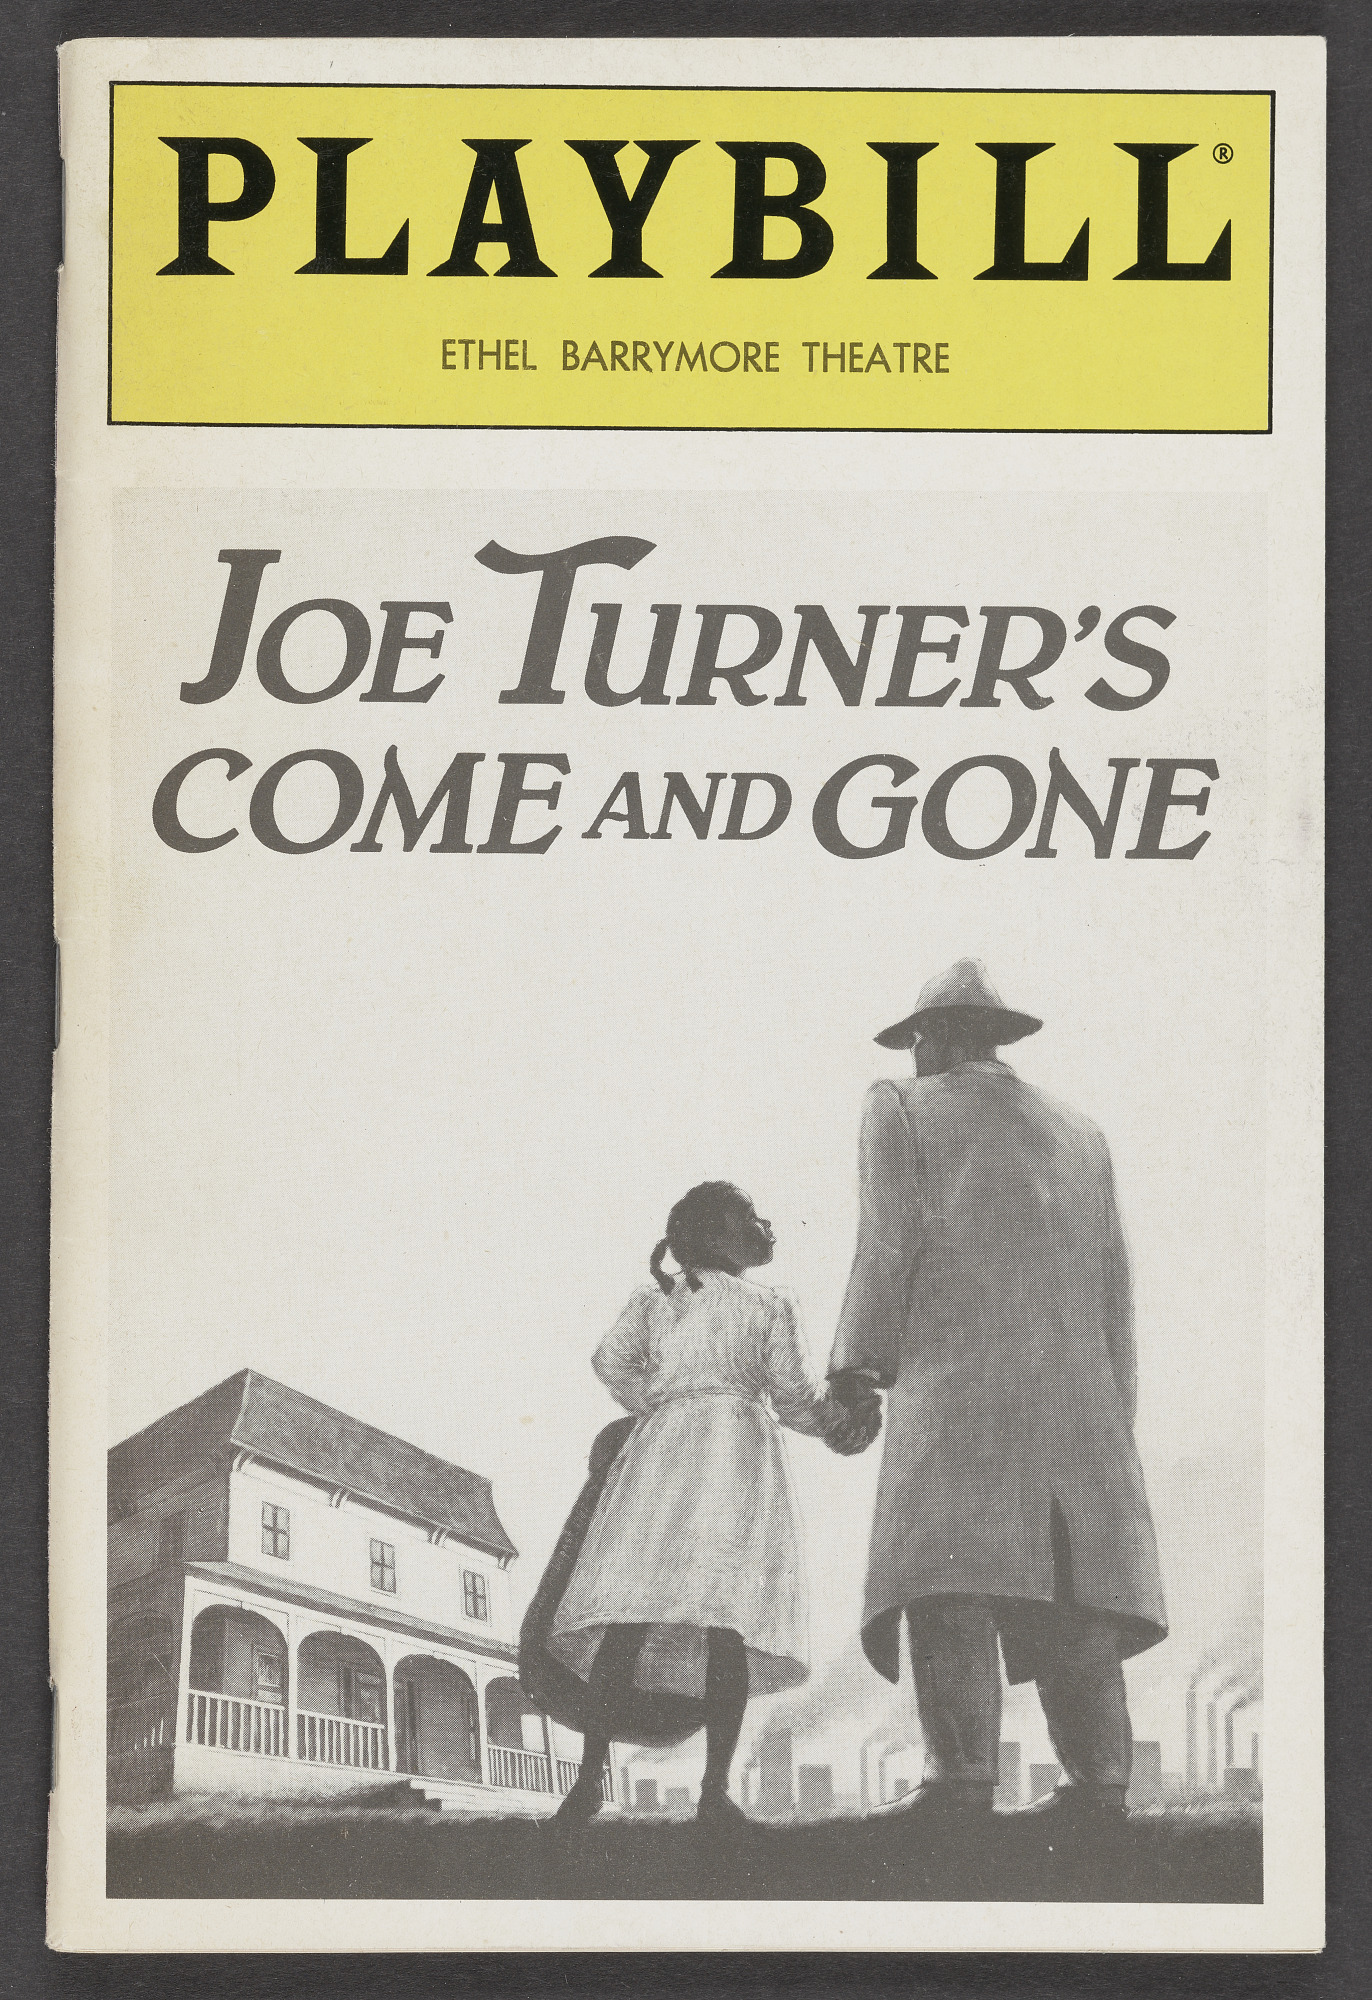 Image for Playbill for Joe Turner's Come and Gone